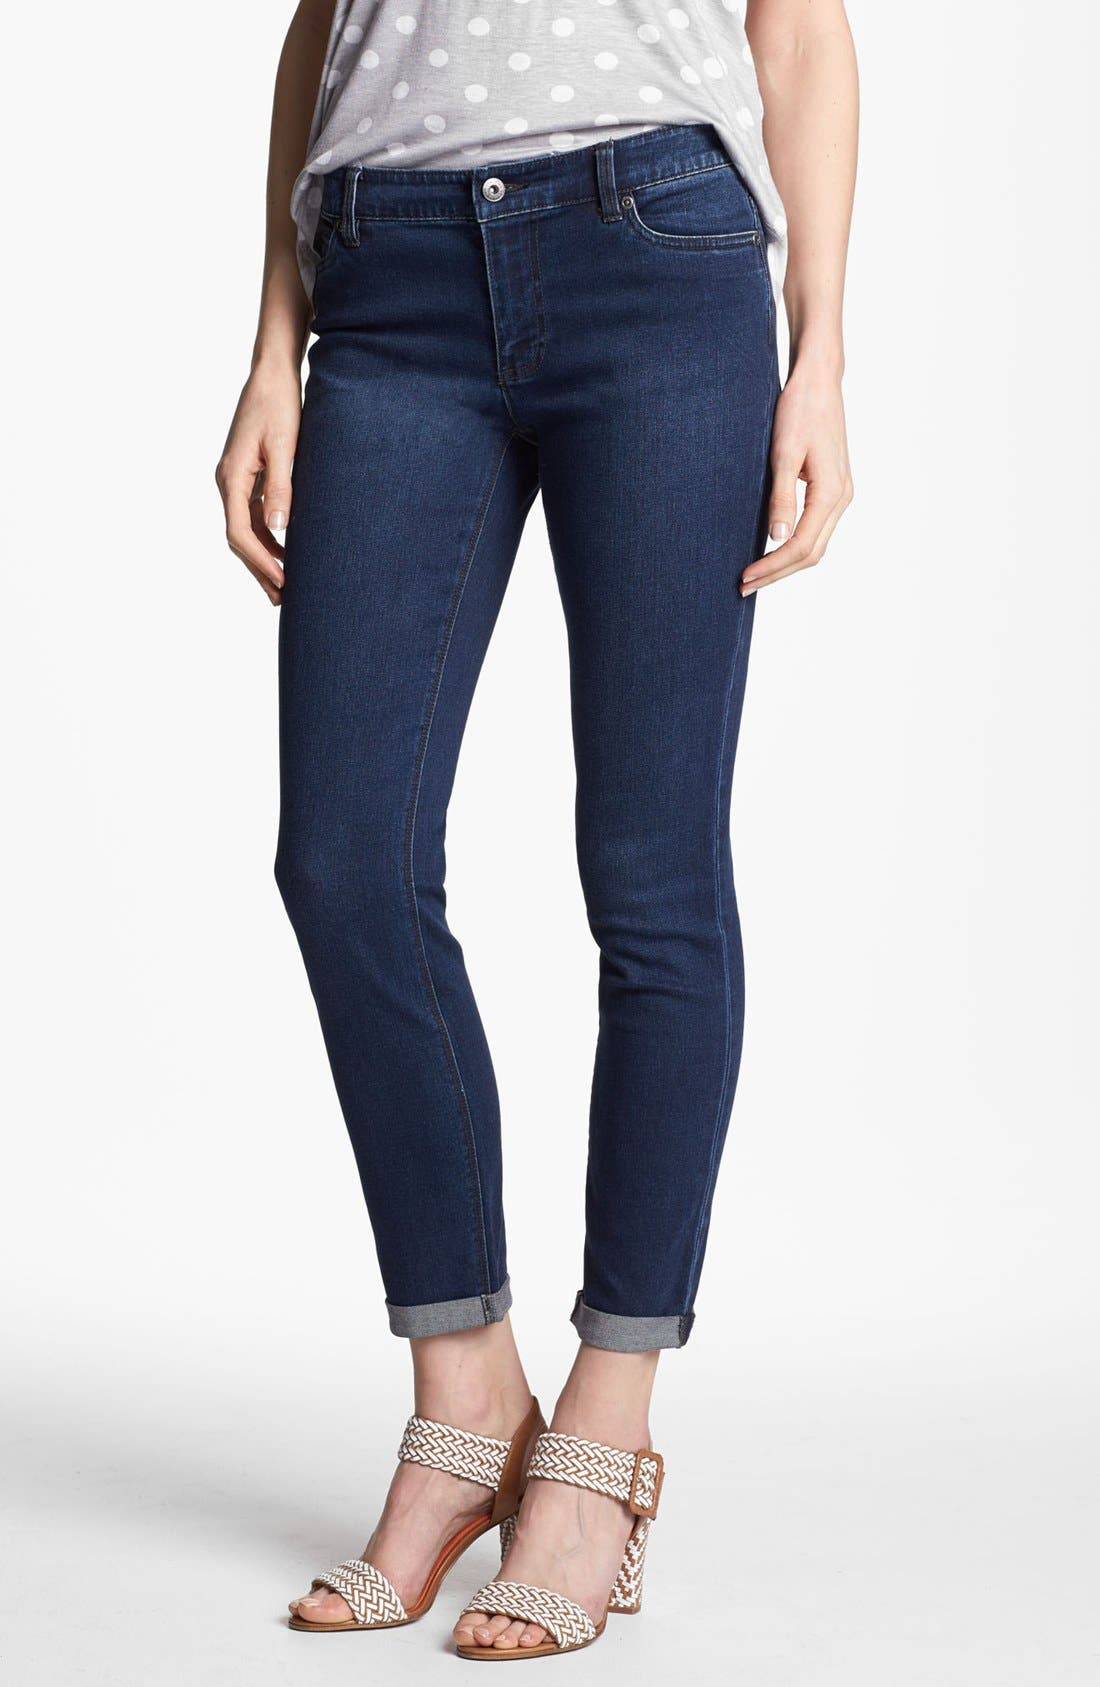 Main Image - Two by Vince Camuto Cuff Crop Jeans